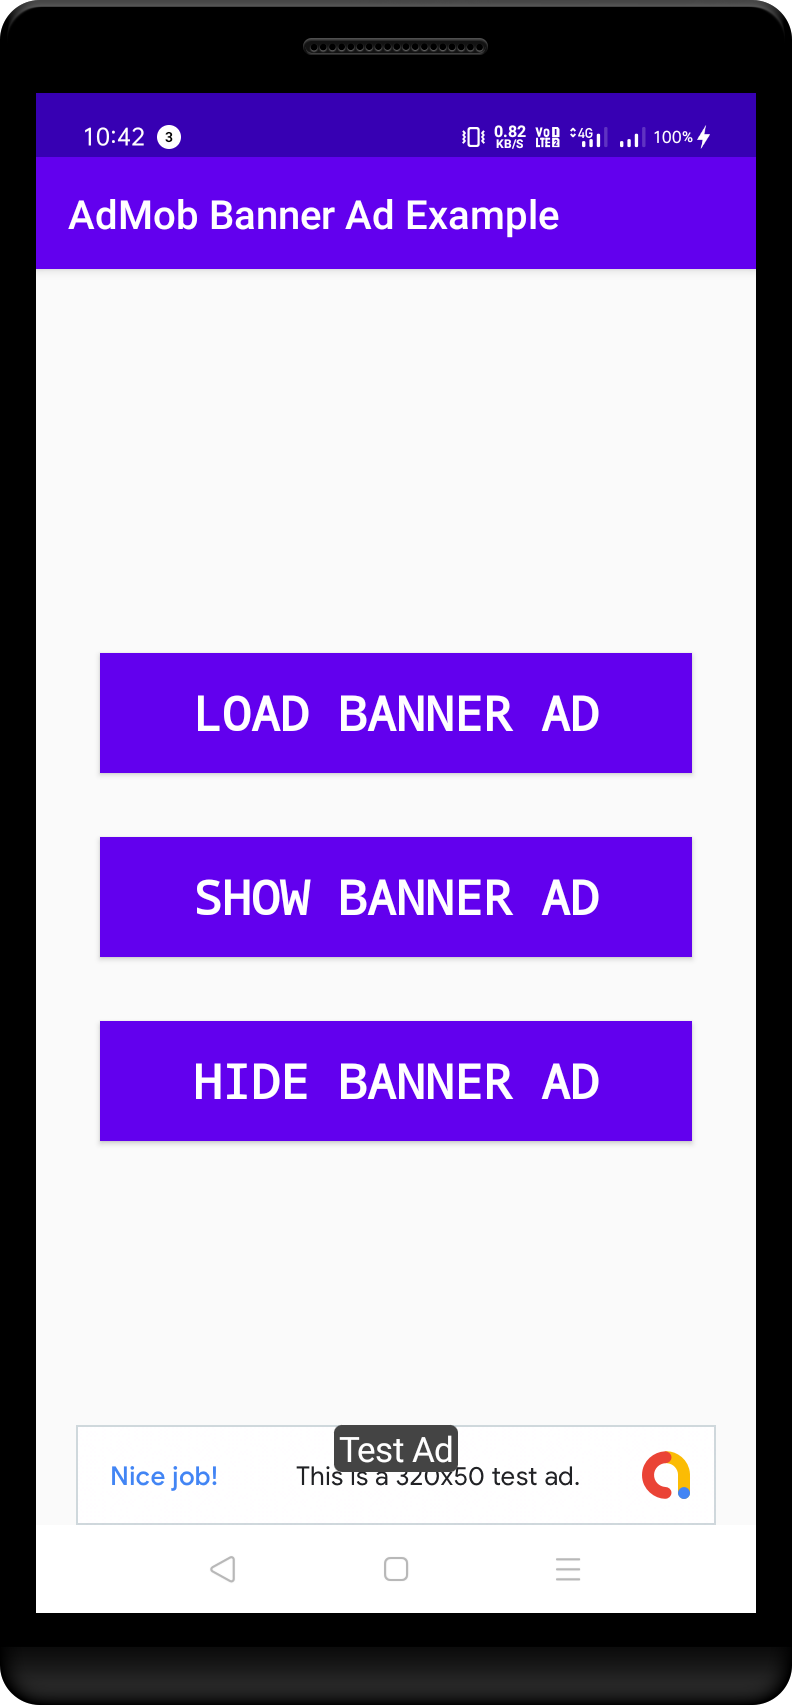 Admin Banner Ad Shown at the bottom of the screen